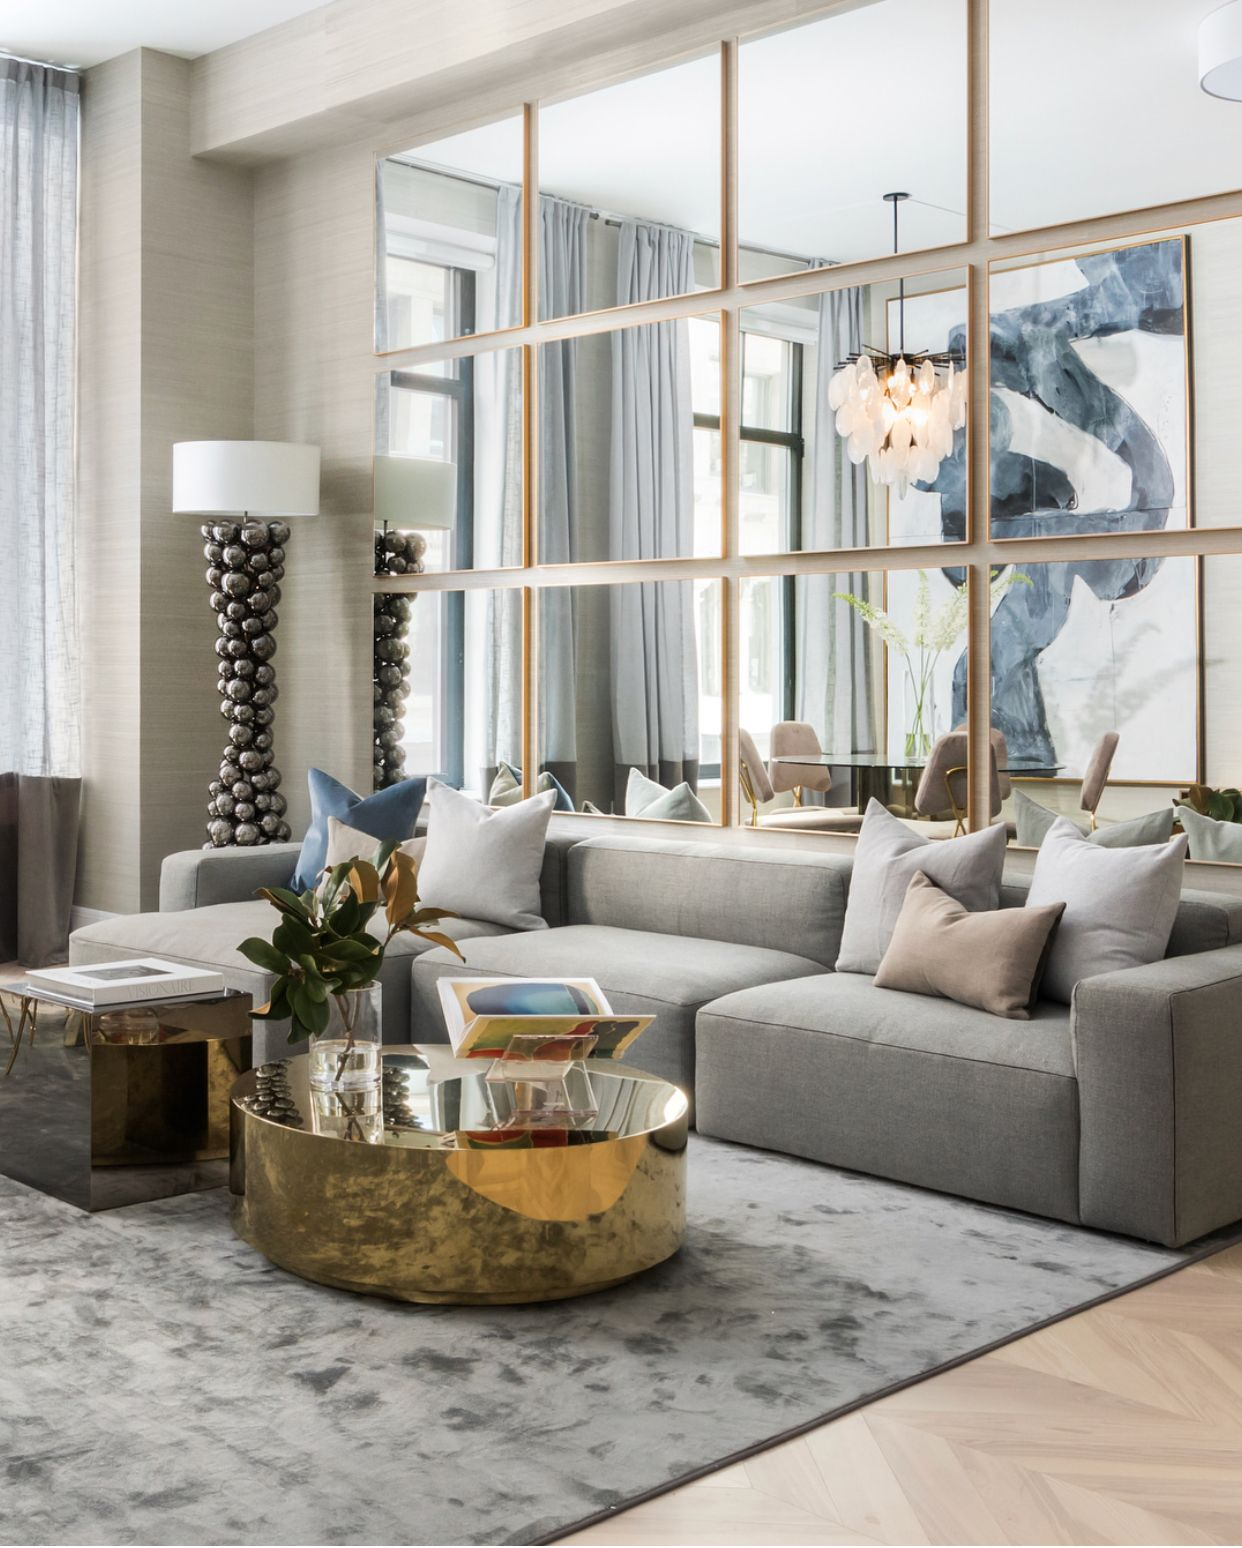 Living room, elegant, mirrored wall | Kuchnia in 2019 ...